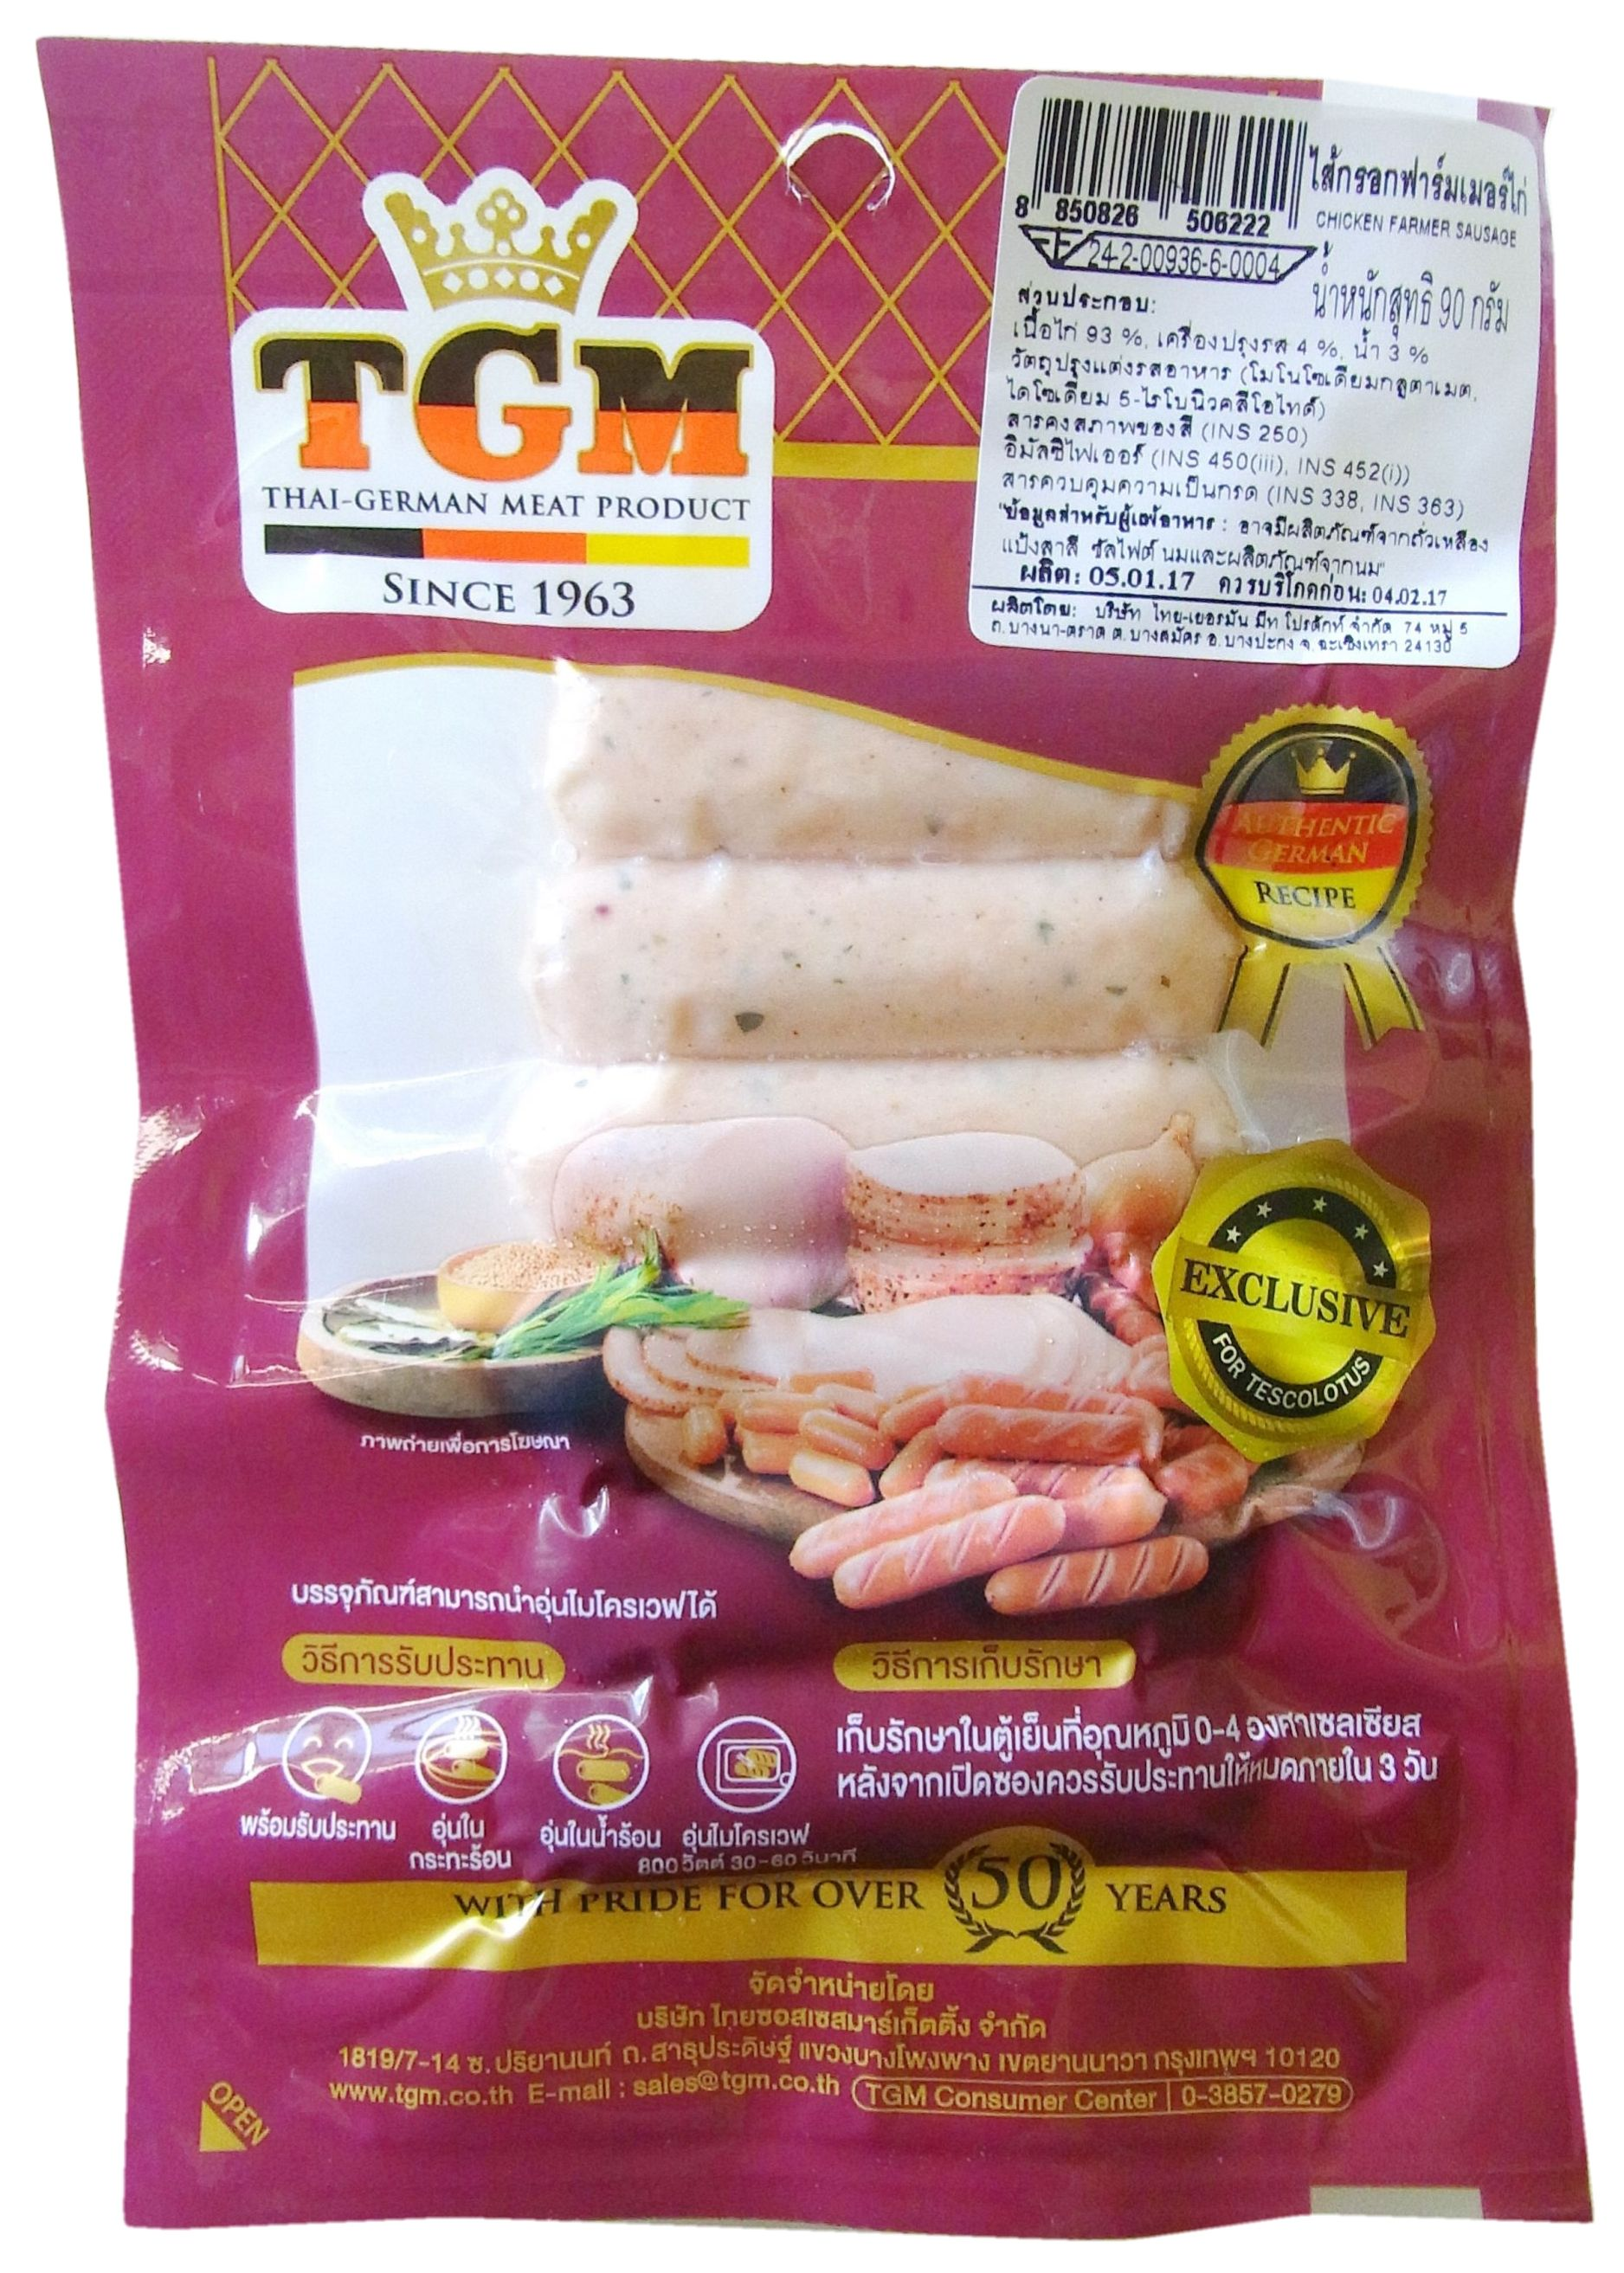 Thai German Meat Products